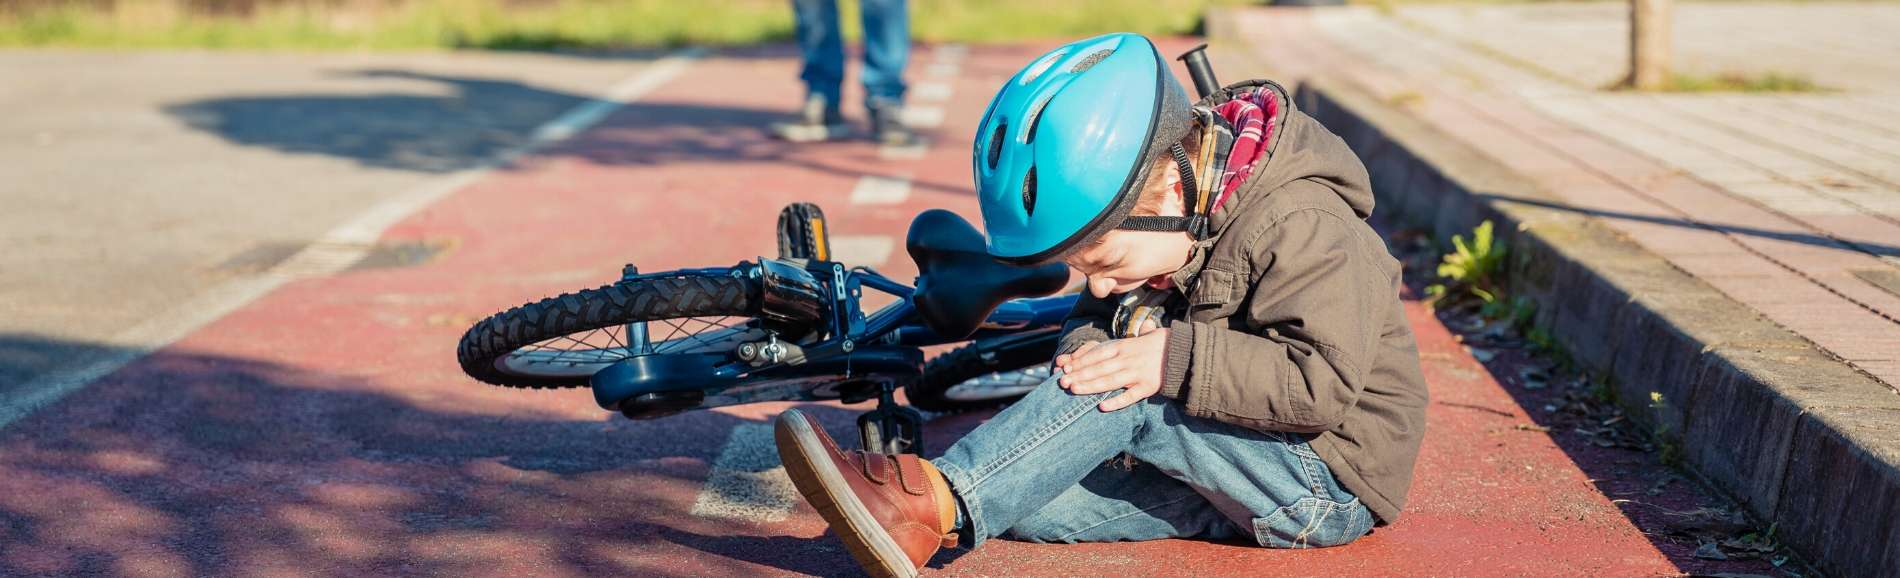 Young boy wearing helmet who's fallen off his bike